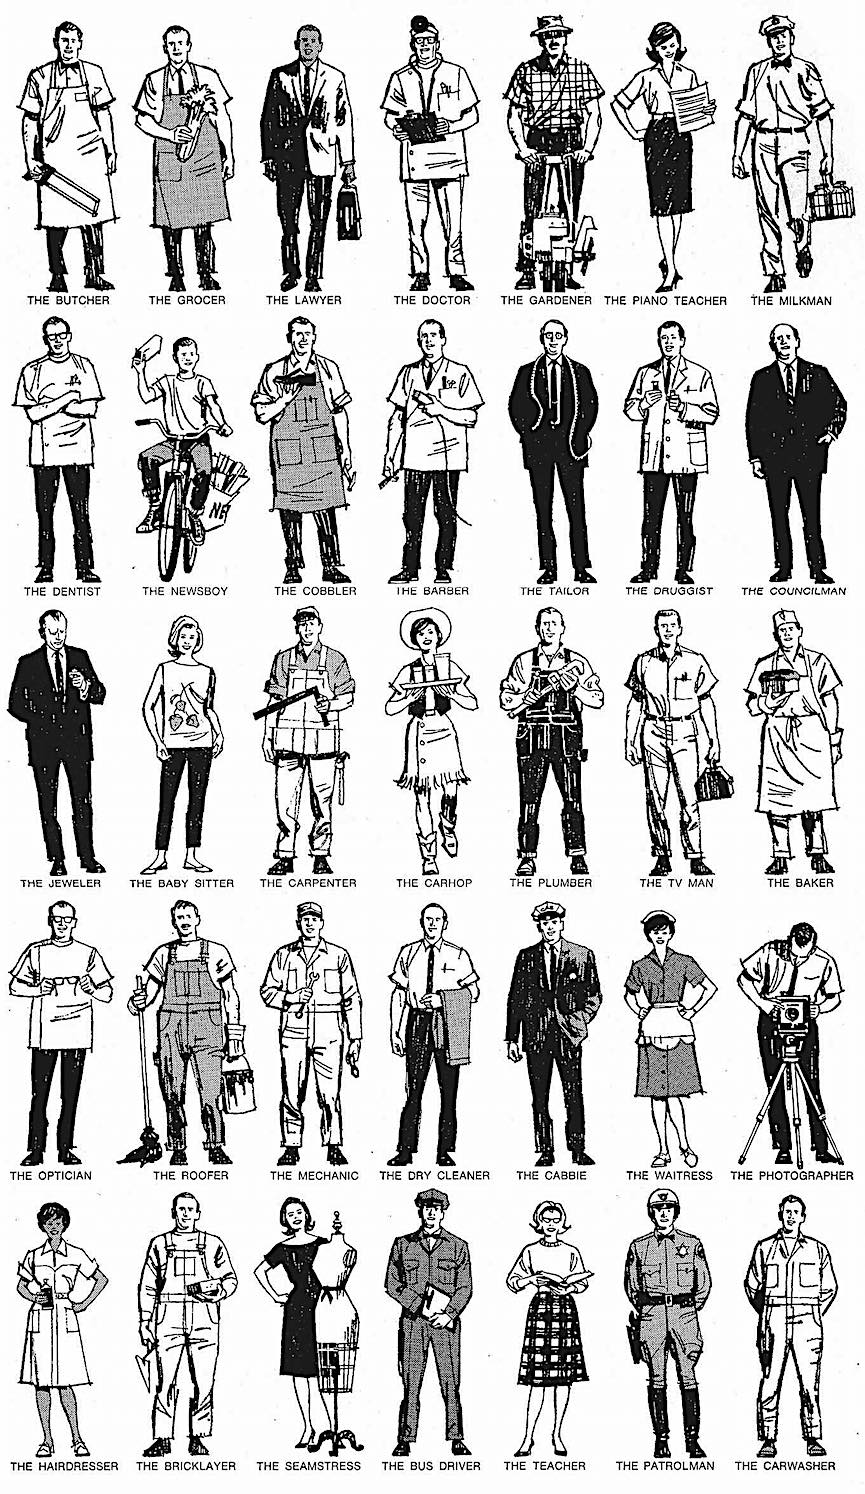 a Charlie Allen illustration of people in many different jobs and professions, in clothing uniform and costume